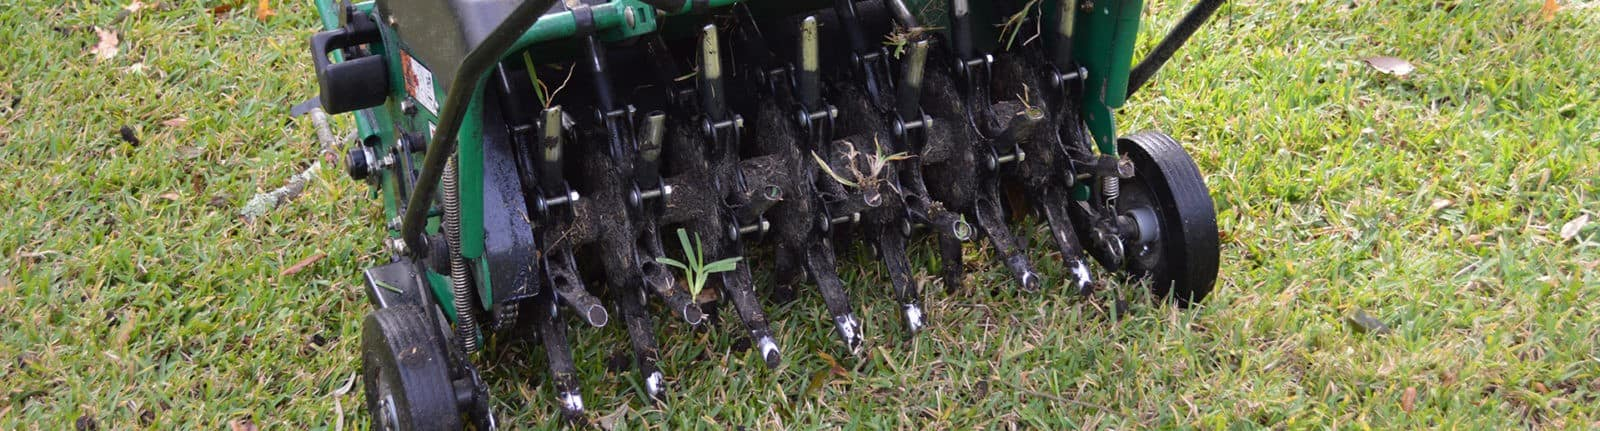 Aeration is good for fall lawn care and weed control